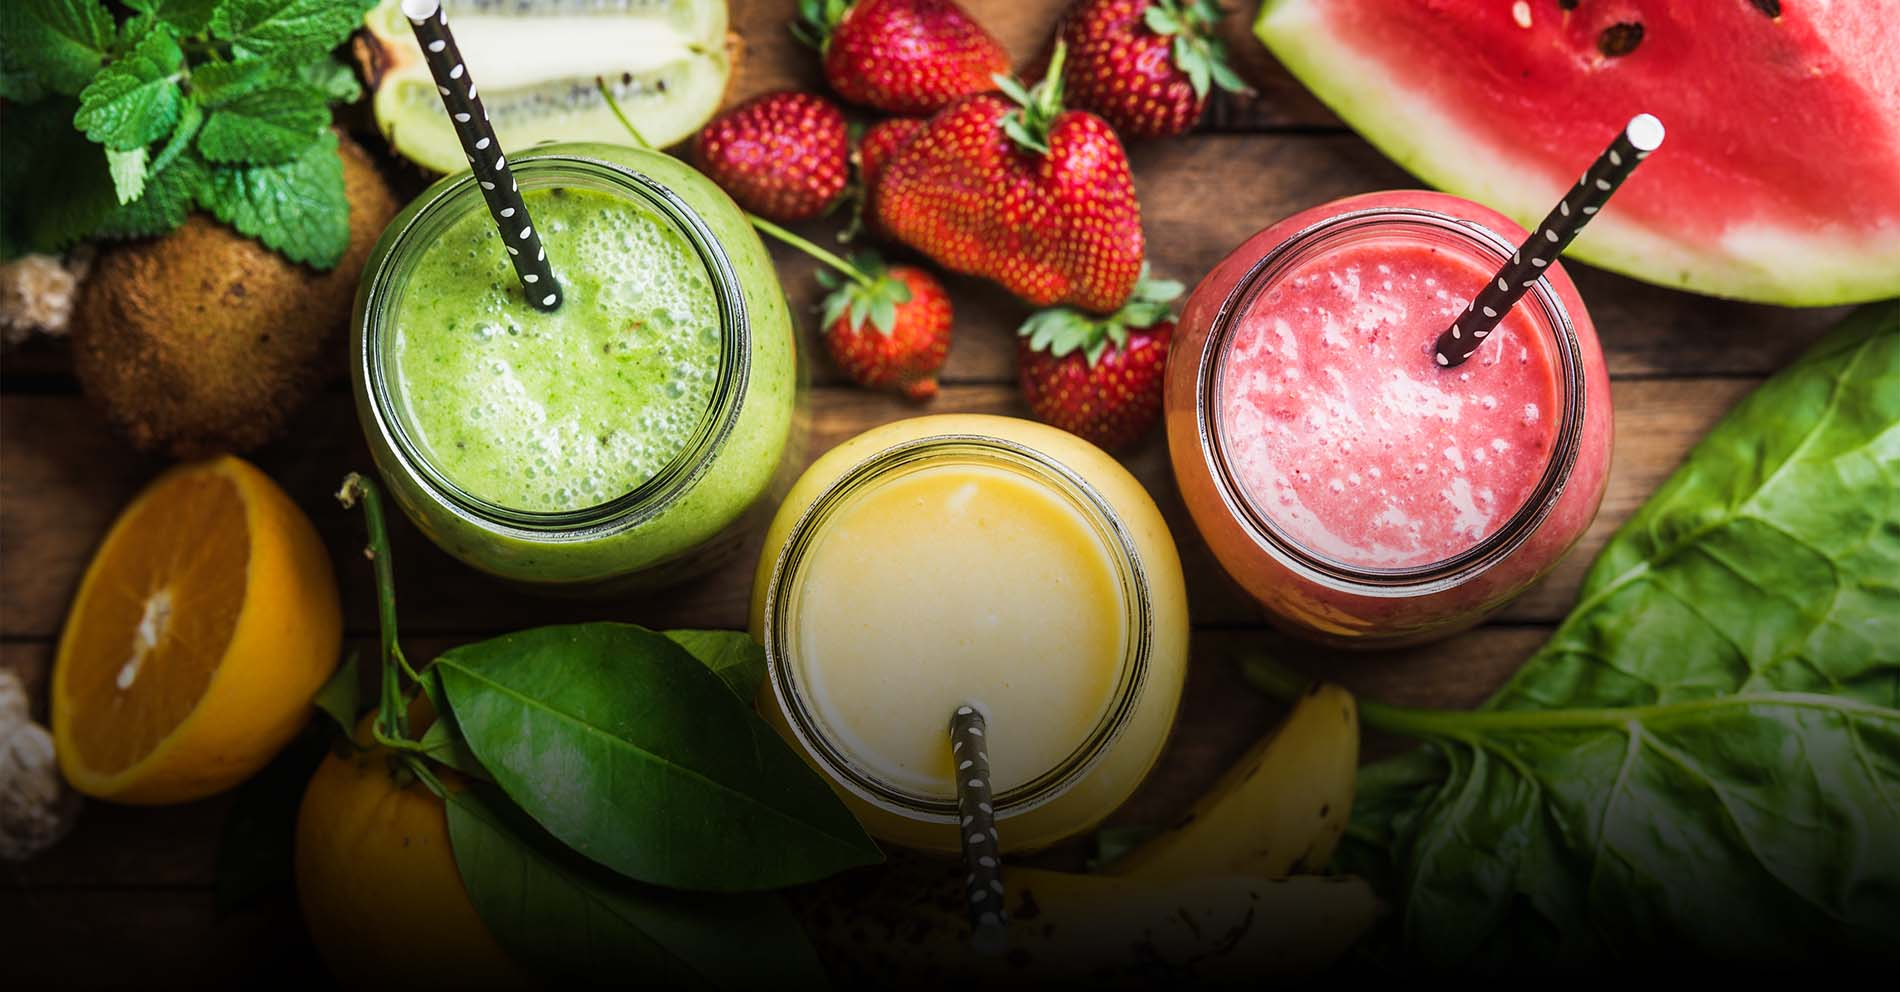 5 Healthy Smoothie Recipes to Try at Home